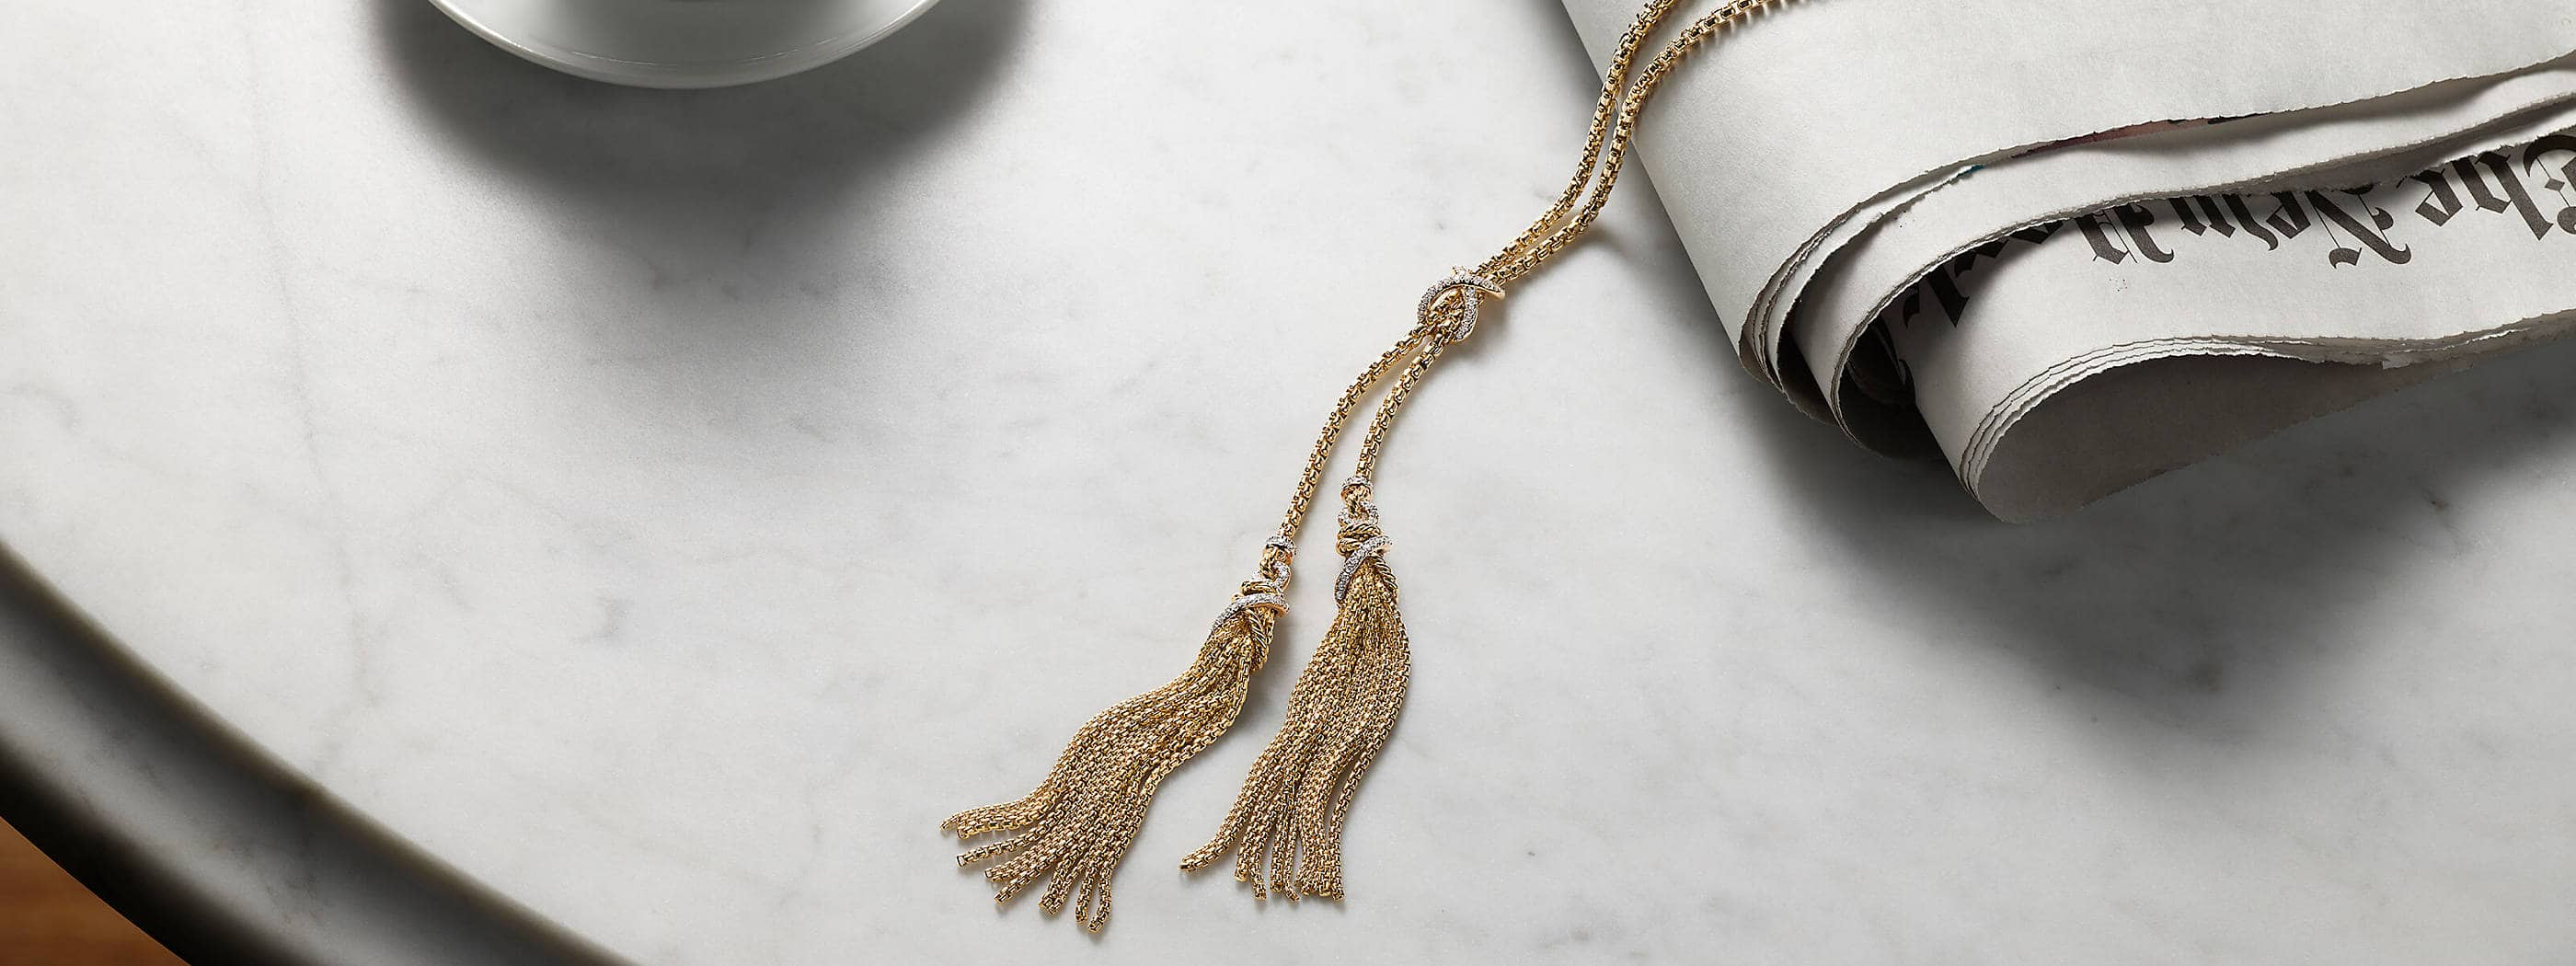 A color photo shows a David Yurman Helena lariat necklace lying on a marble table atop the New York Times and nearby a white saucer. The women's jewelry is crafted from 18K yellow gold with pavé diamond accents near its tasseled ends.